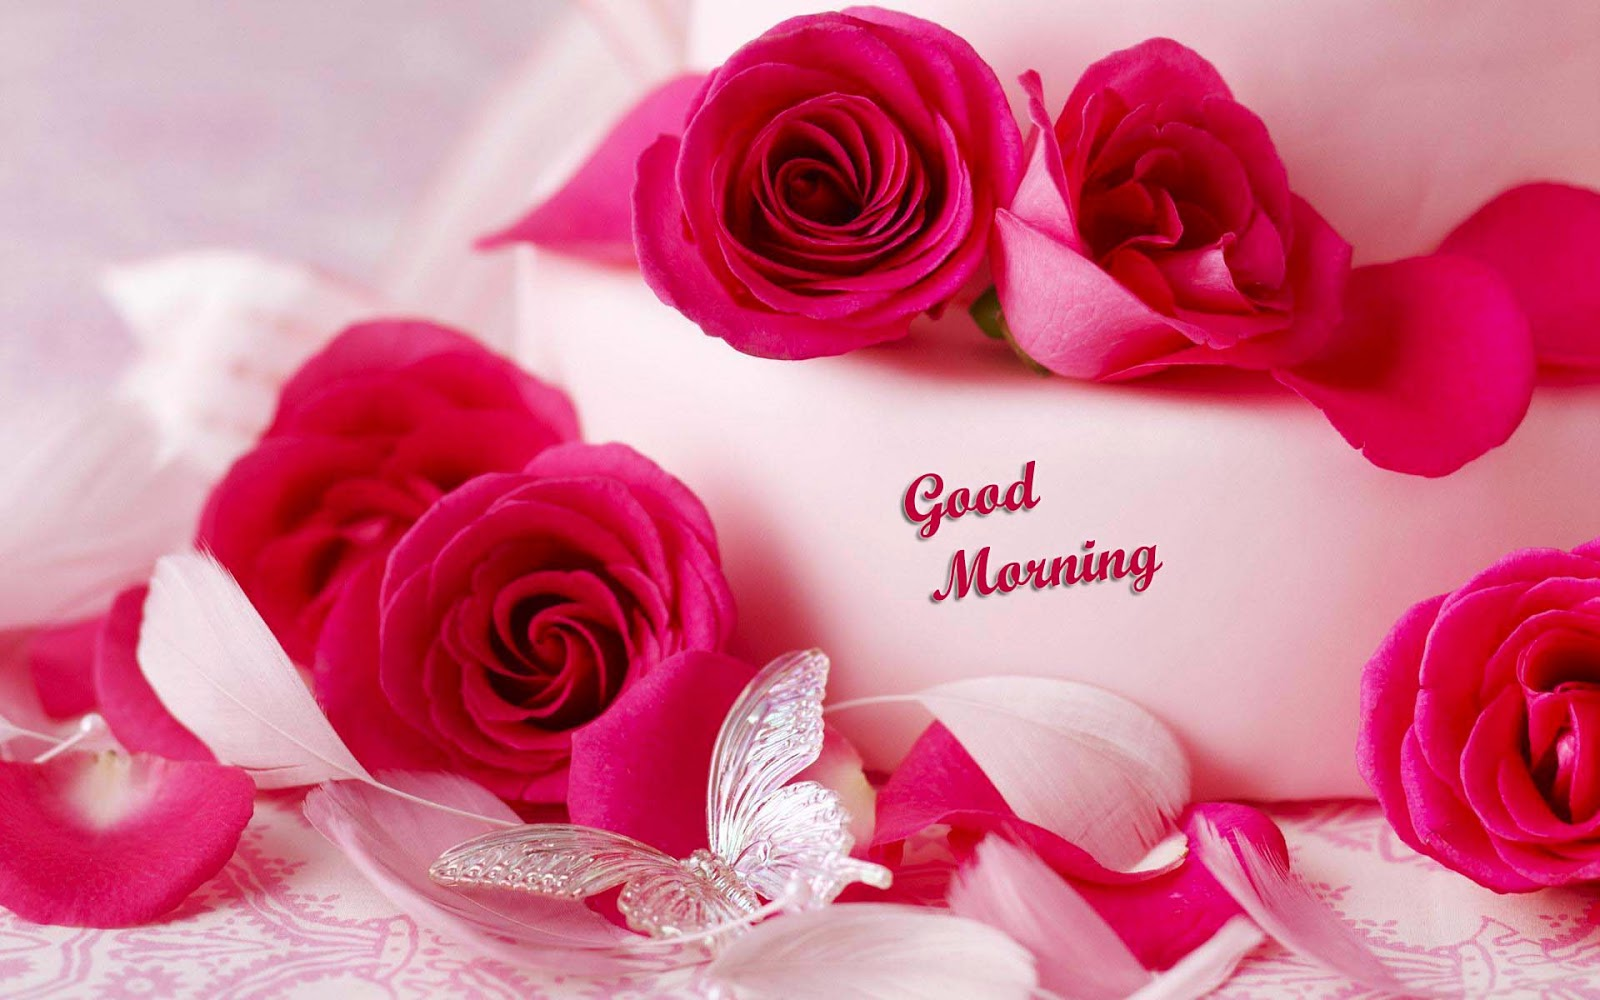 Romantic-Roses-good-morning-hd-wallpapers